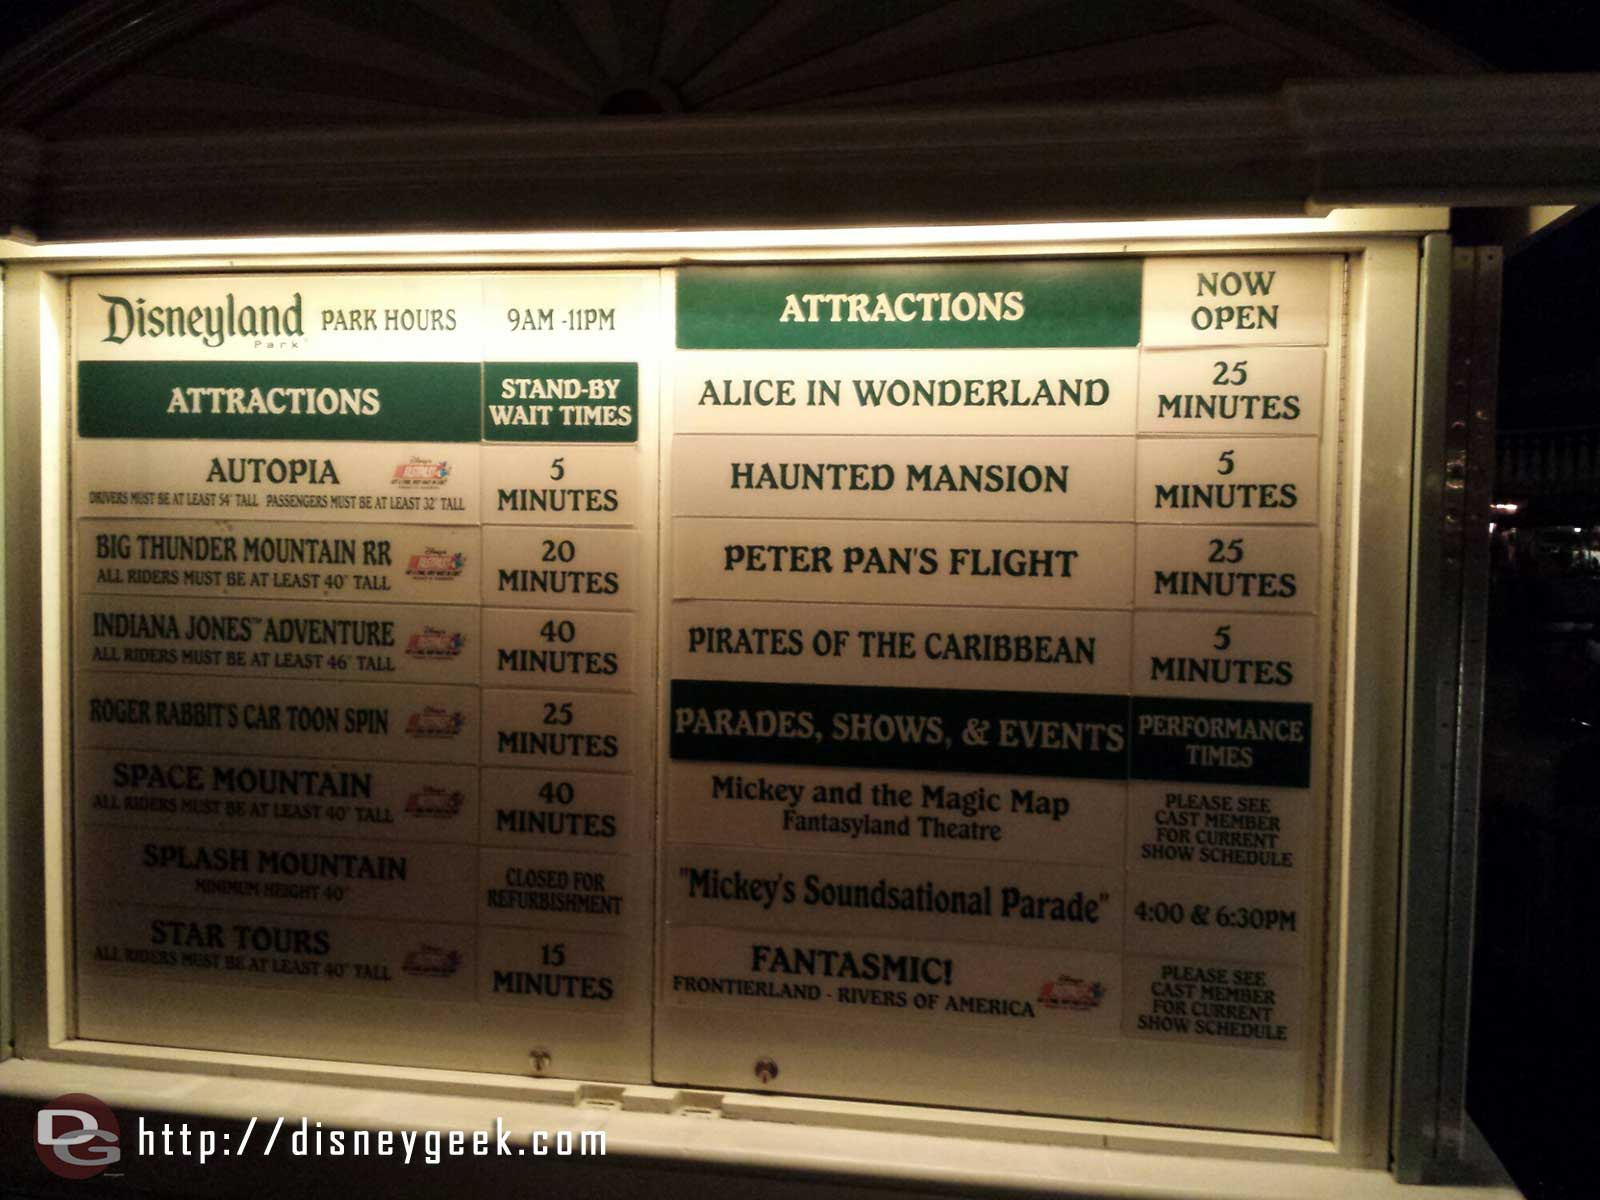 #Disneyland waits as of 6:04pm